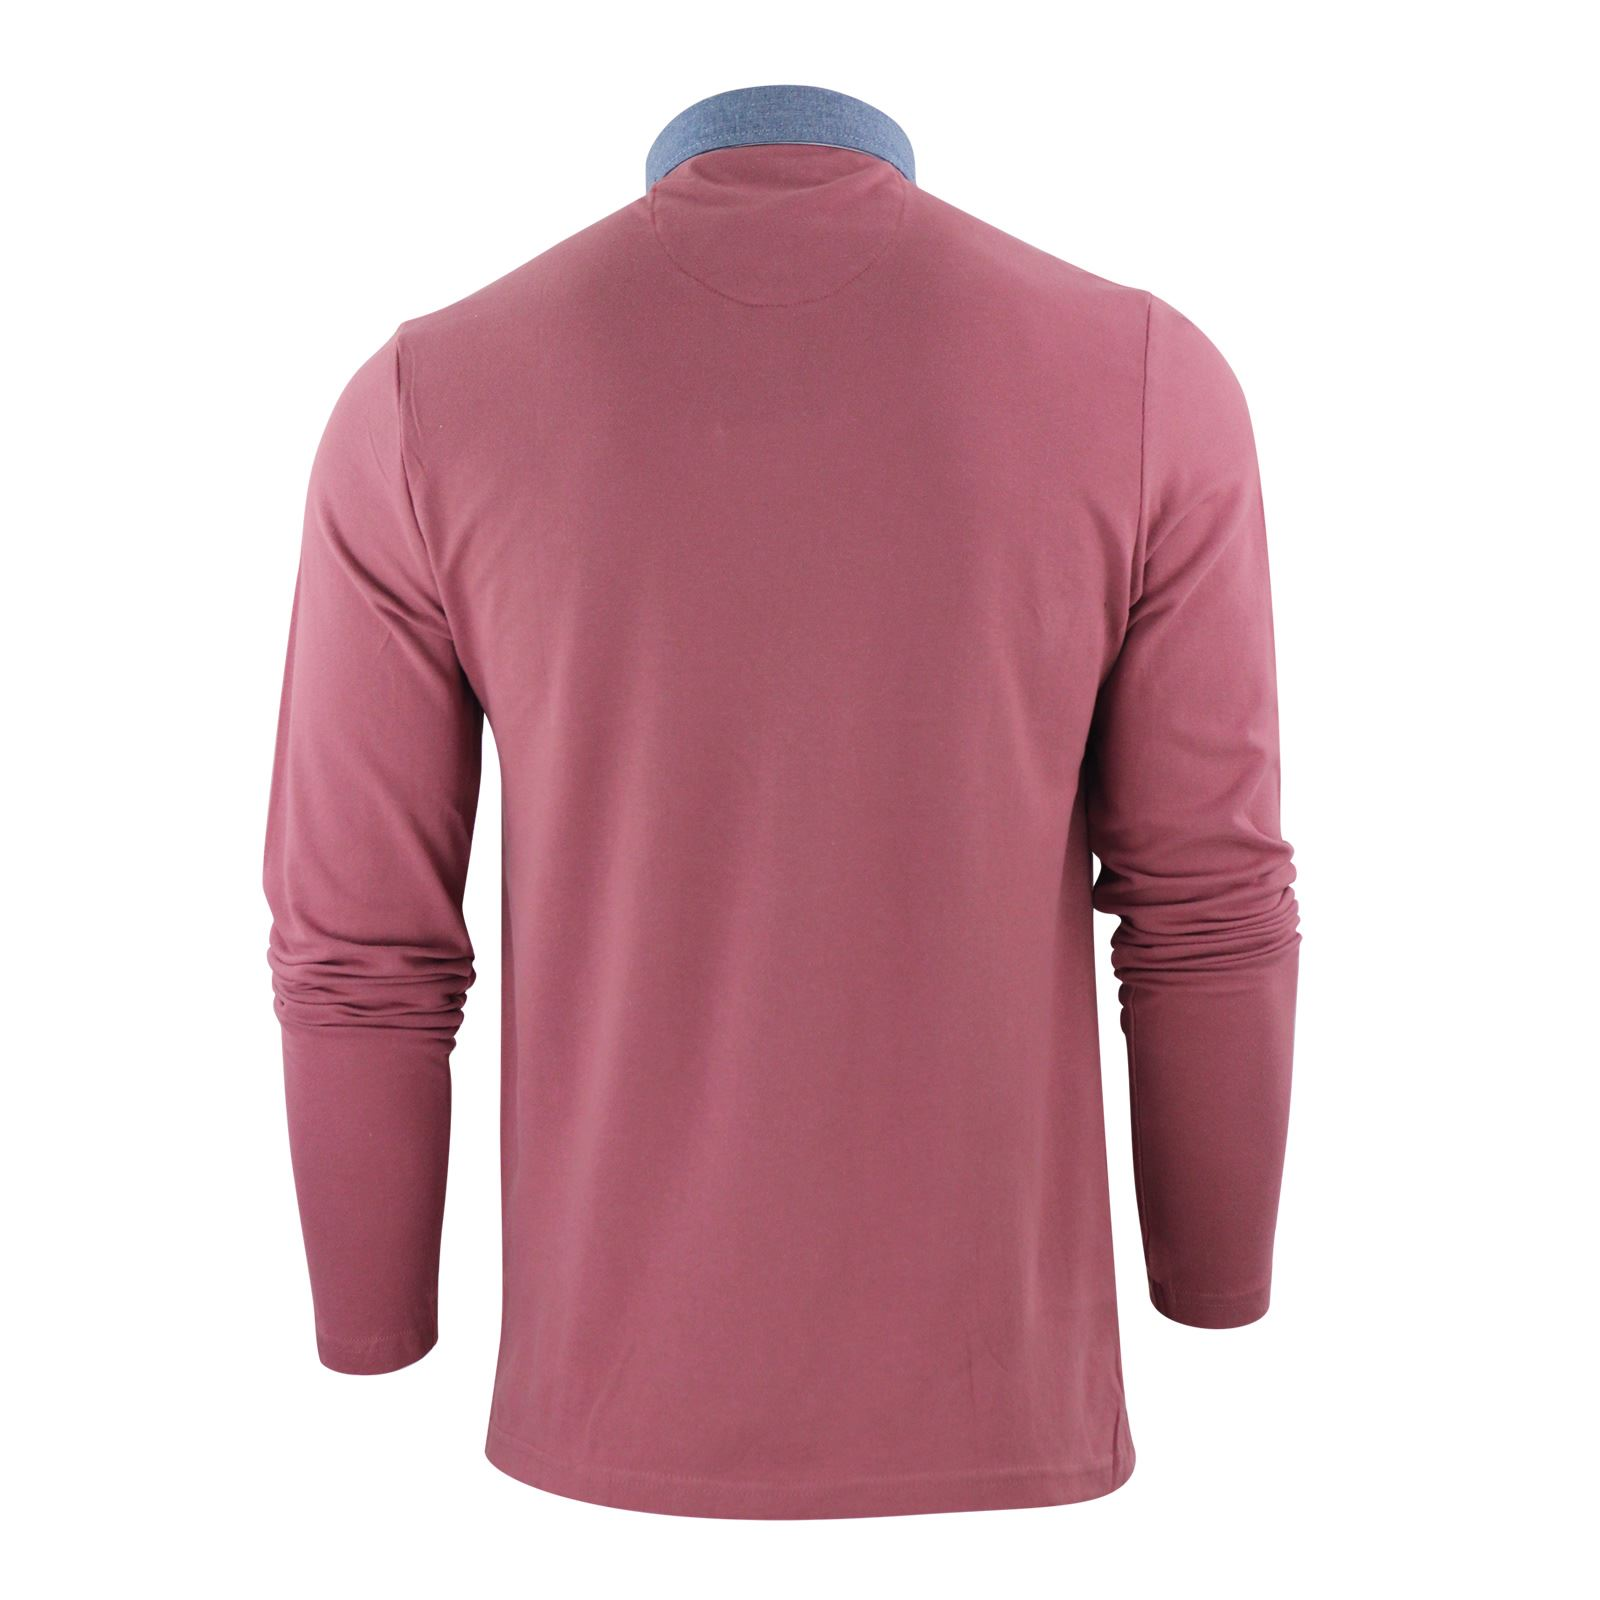 Mens-Polo-Shirt-Brave-Soul-Long-Sleeve-Collared-Top-In-Various-Styles thumbnail 51